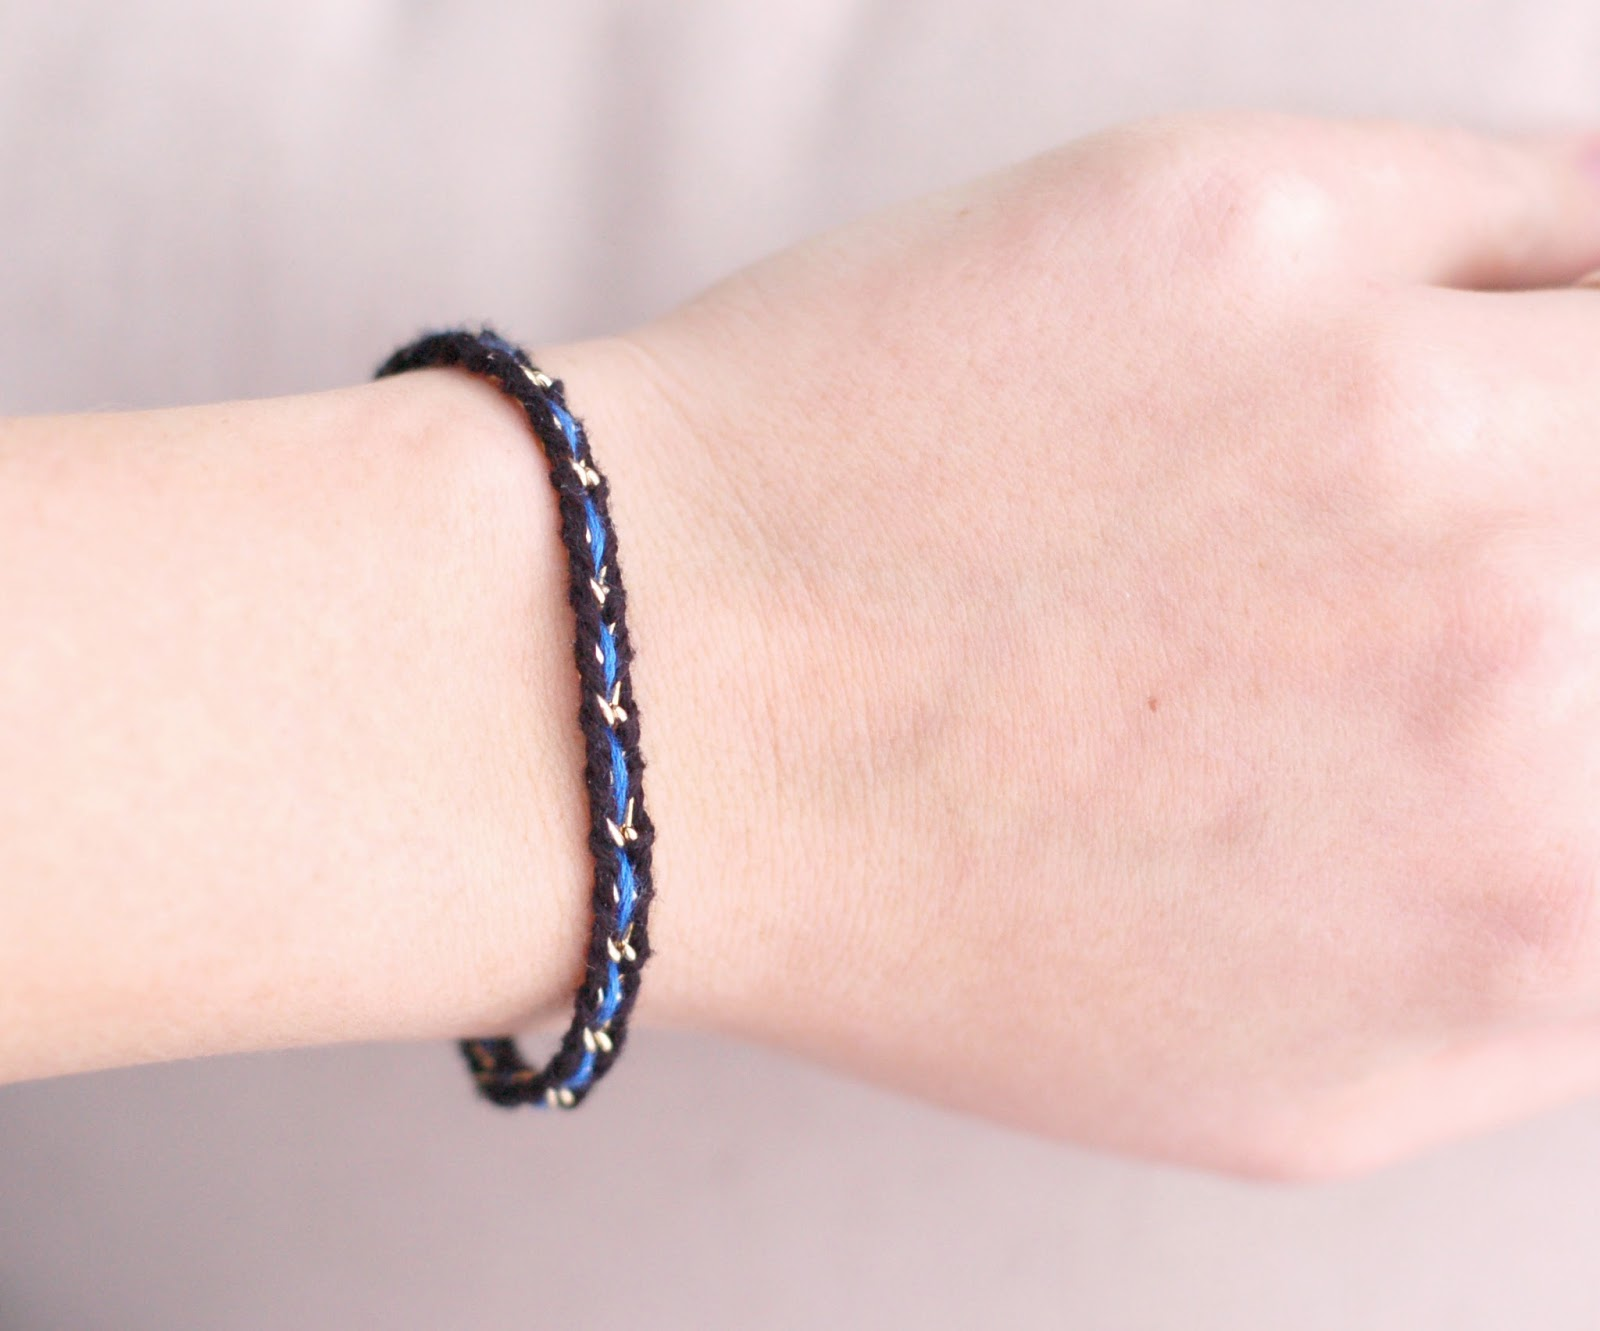 blue products police line leather officer thin bracelet law enforcement for spirit my lives support survival soul bangle